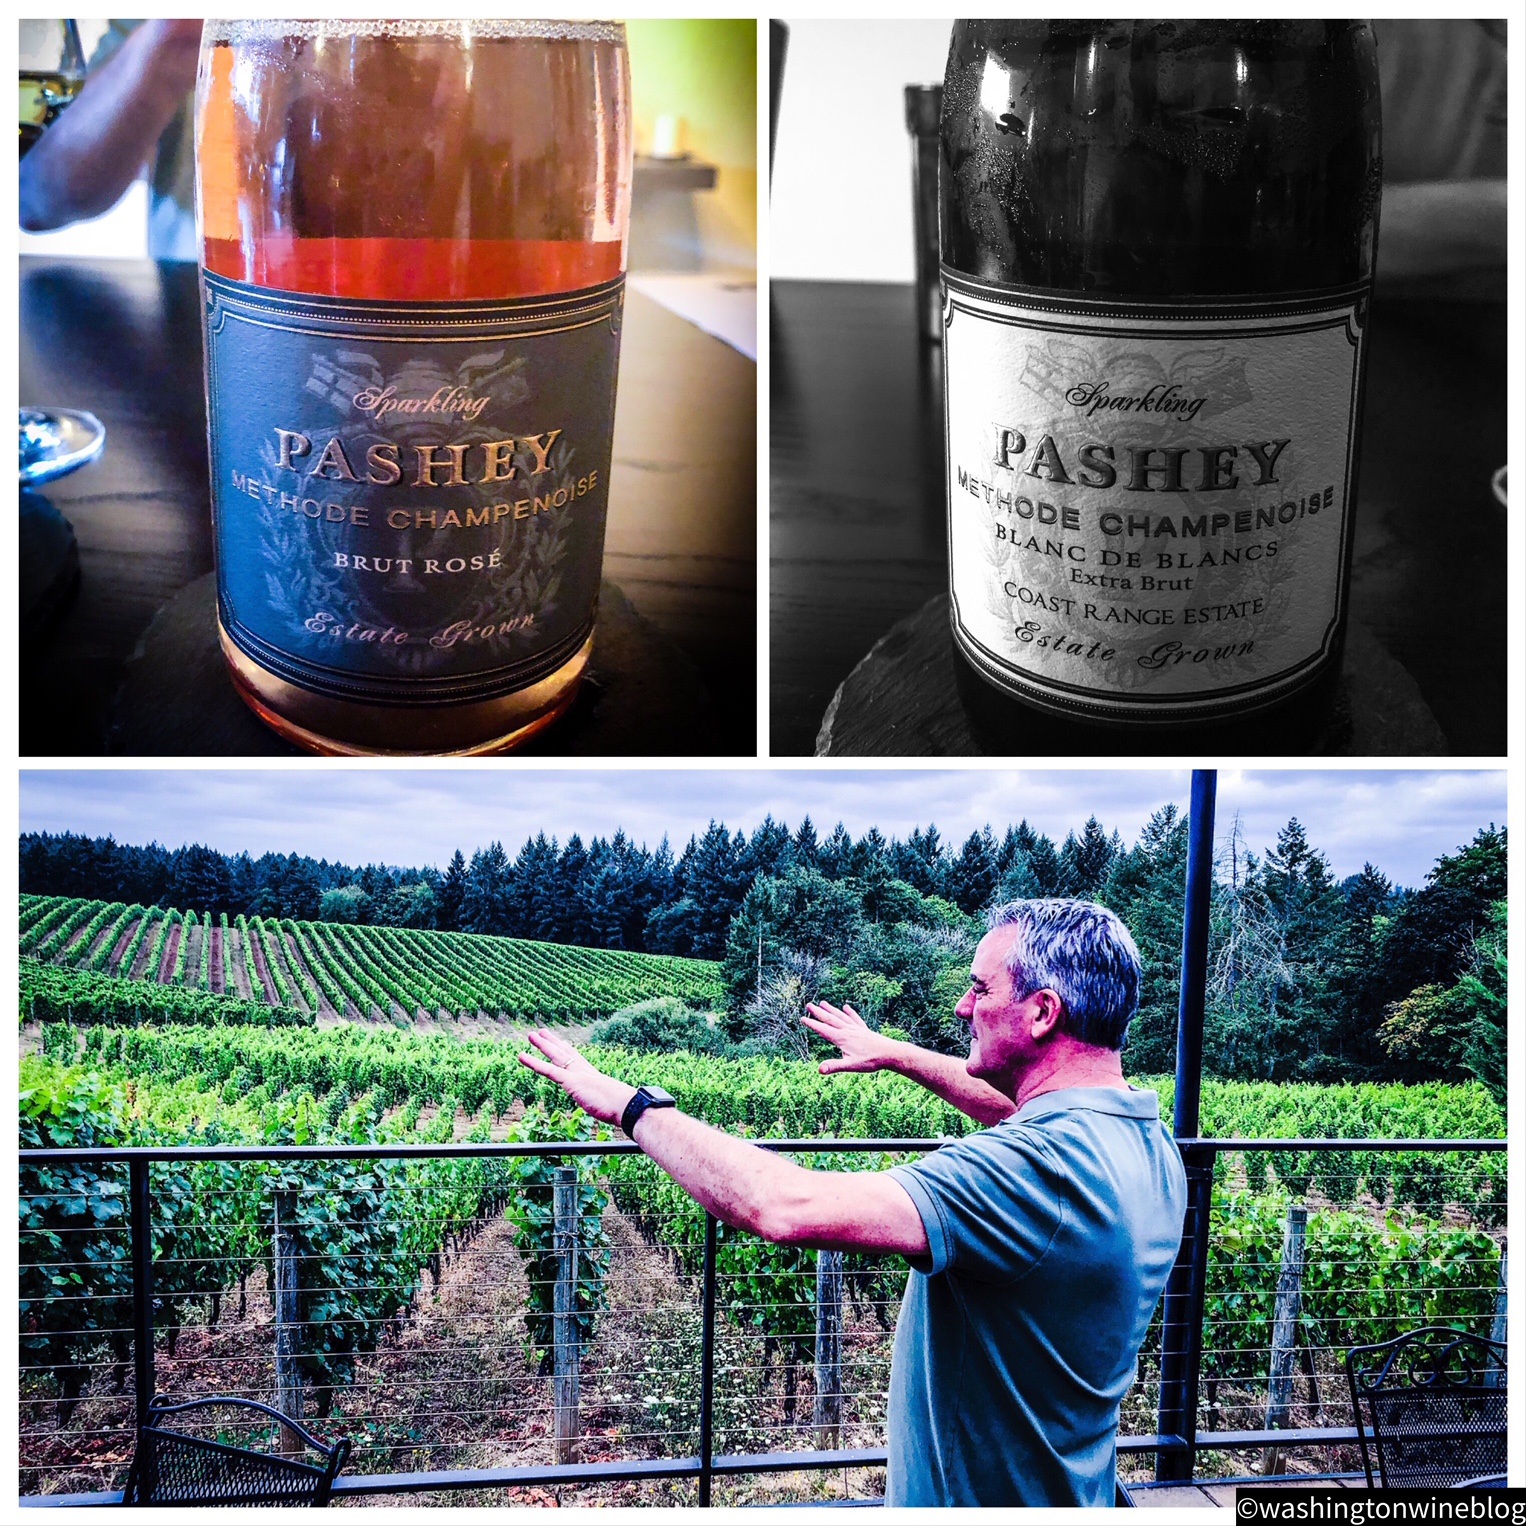 The new Pashey wines by the talented James Frey are simply brilliant, terroir-driven efforts.